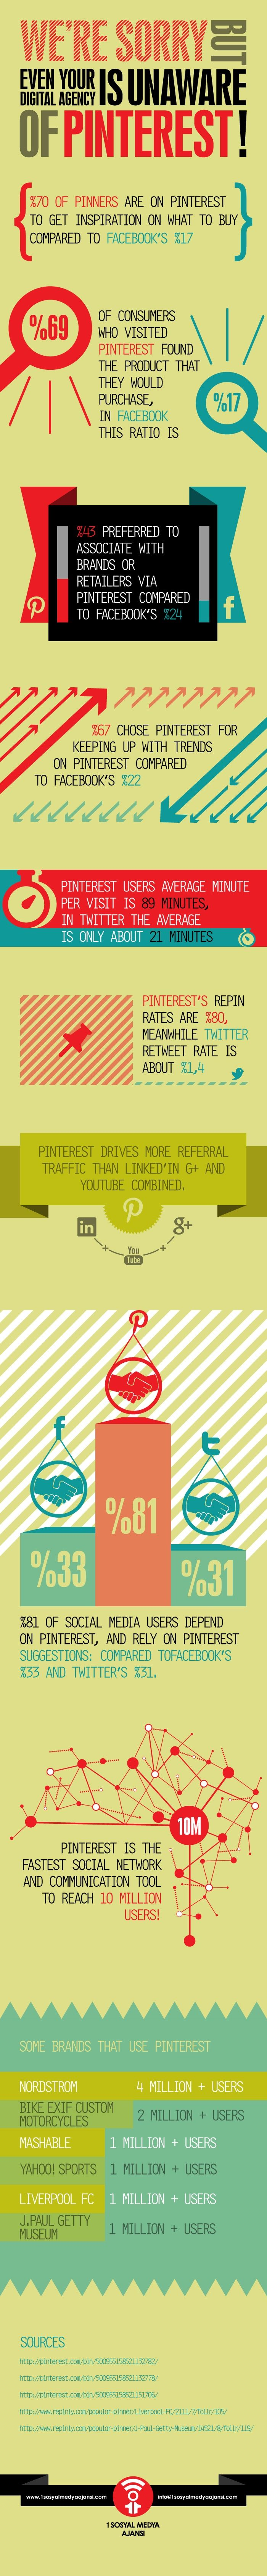 Pinterest infographic - Did you know.......